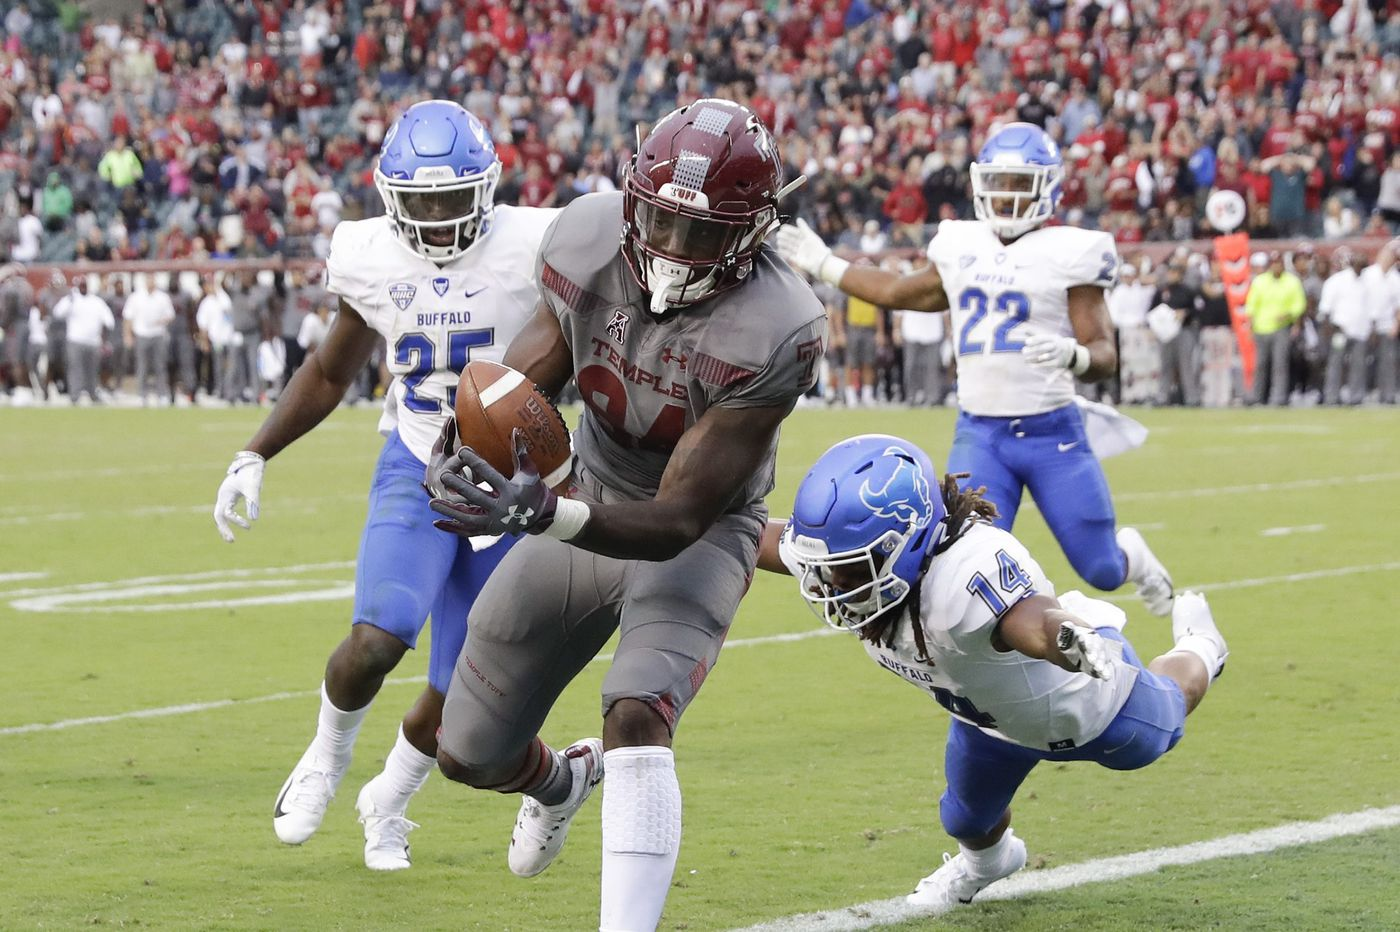 Temple remains upbeat, but remaining schedule is tough   Analysis